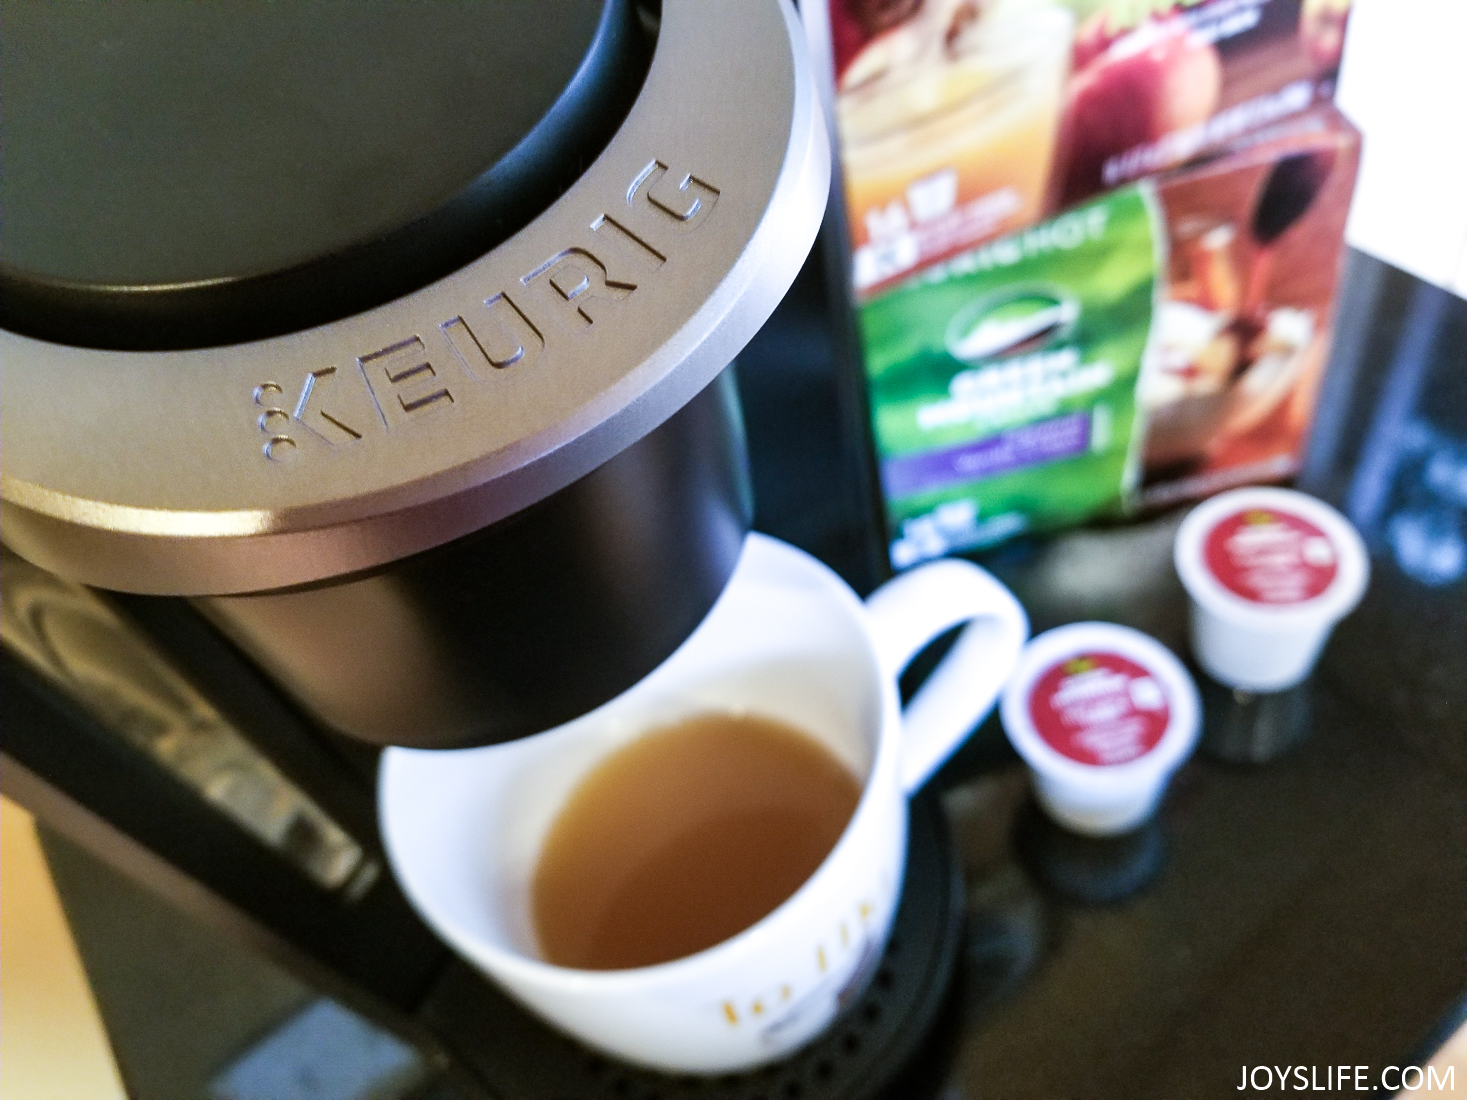 Keurig K Select apple cider kcup